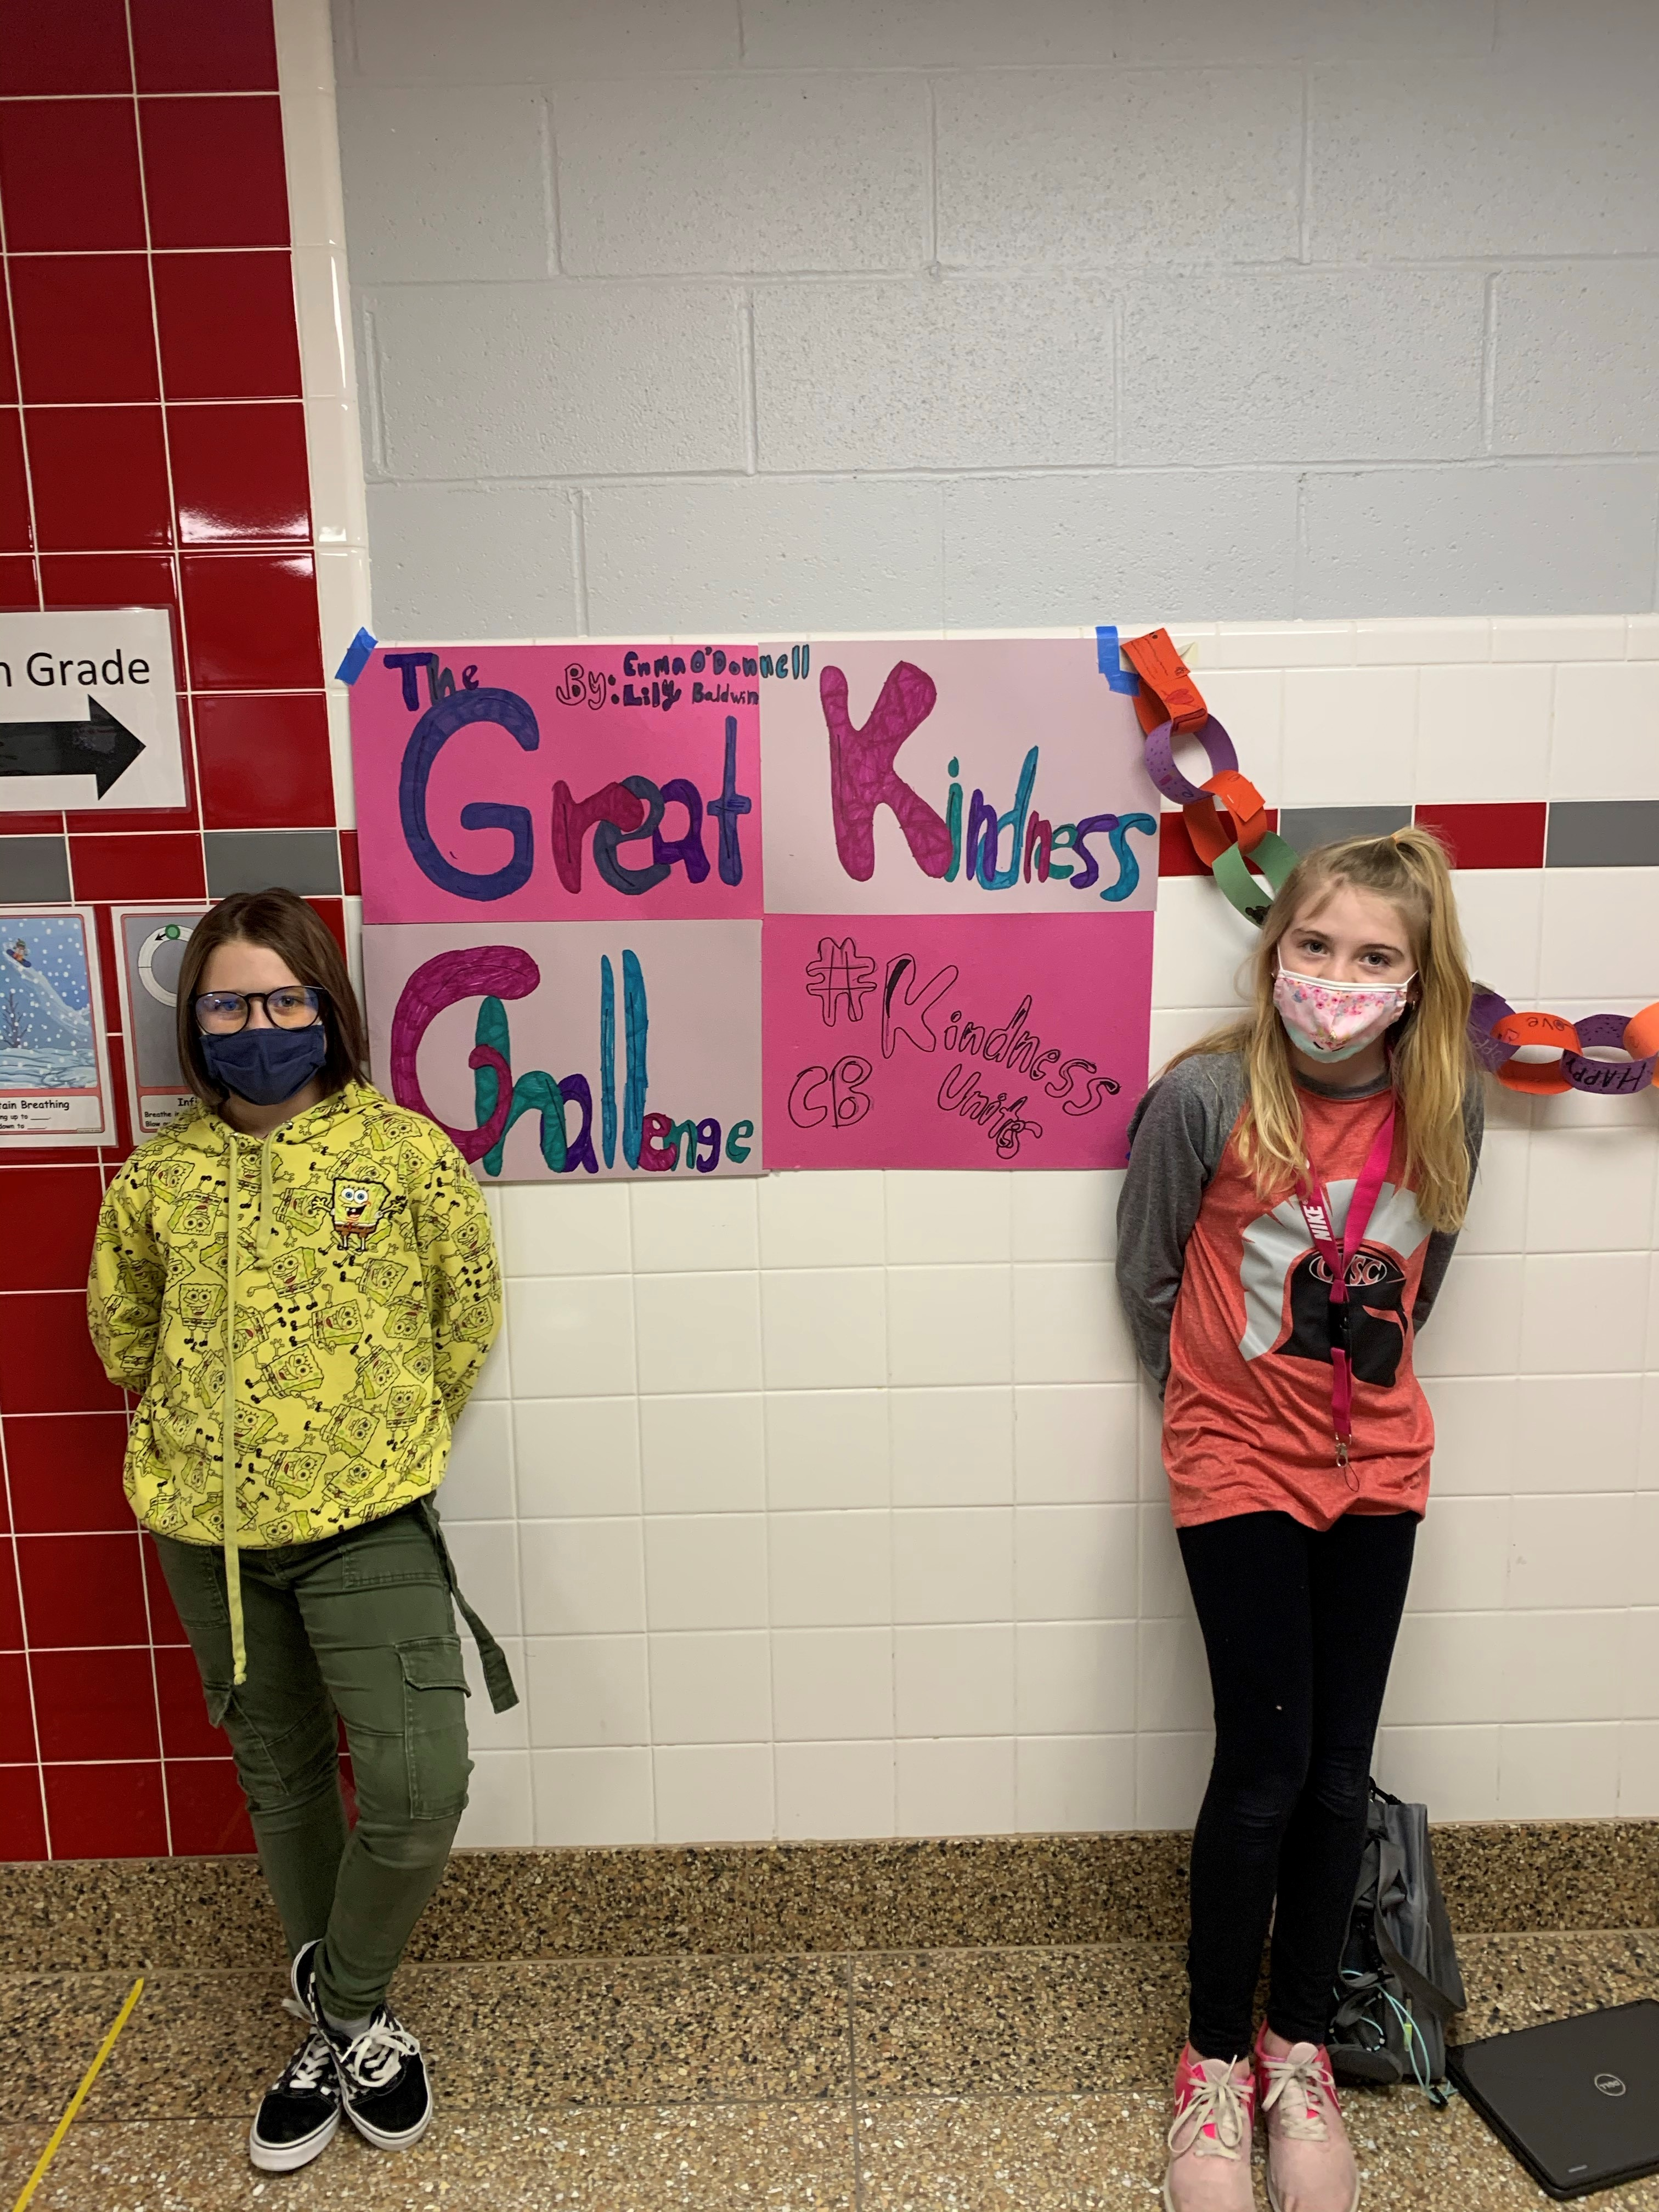 students standing next to great kindness challenge poster